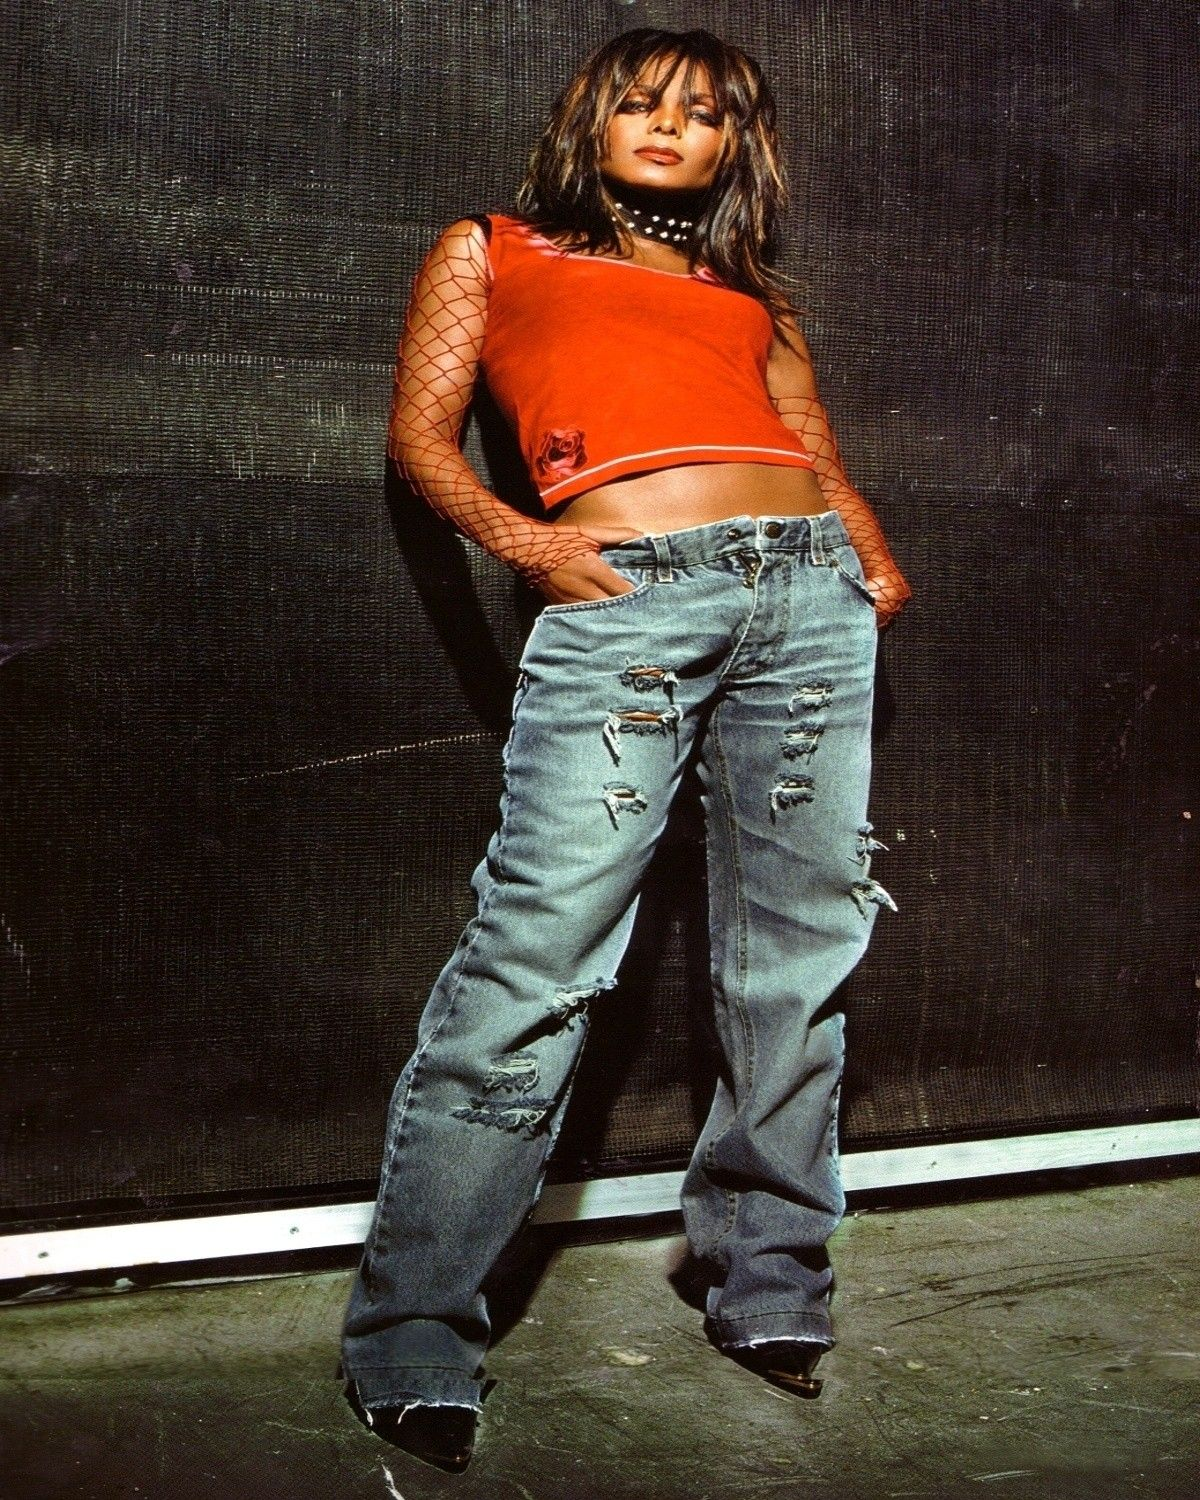 Janet Jackson's All For You Tour Book | Janet Jackson in